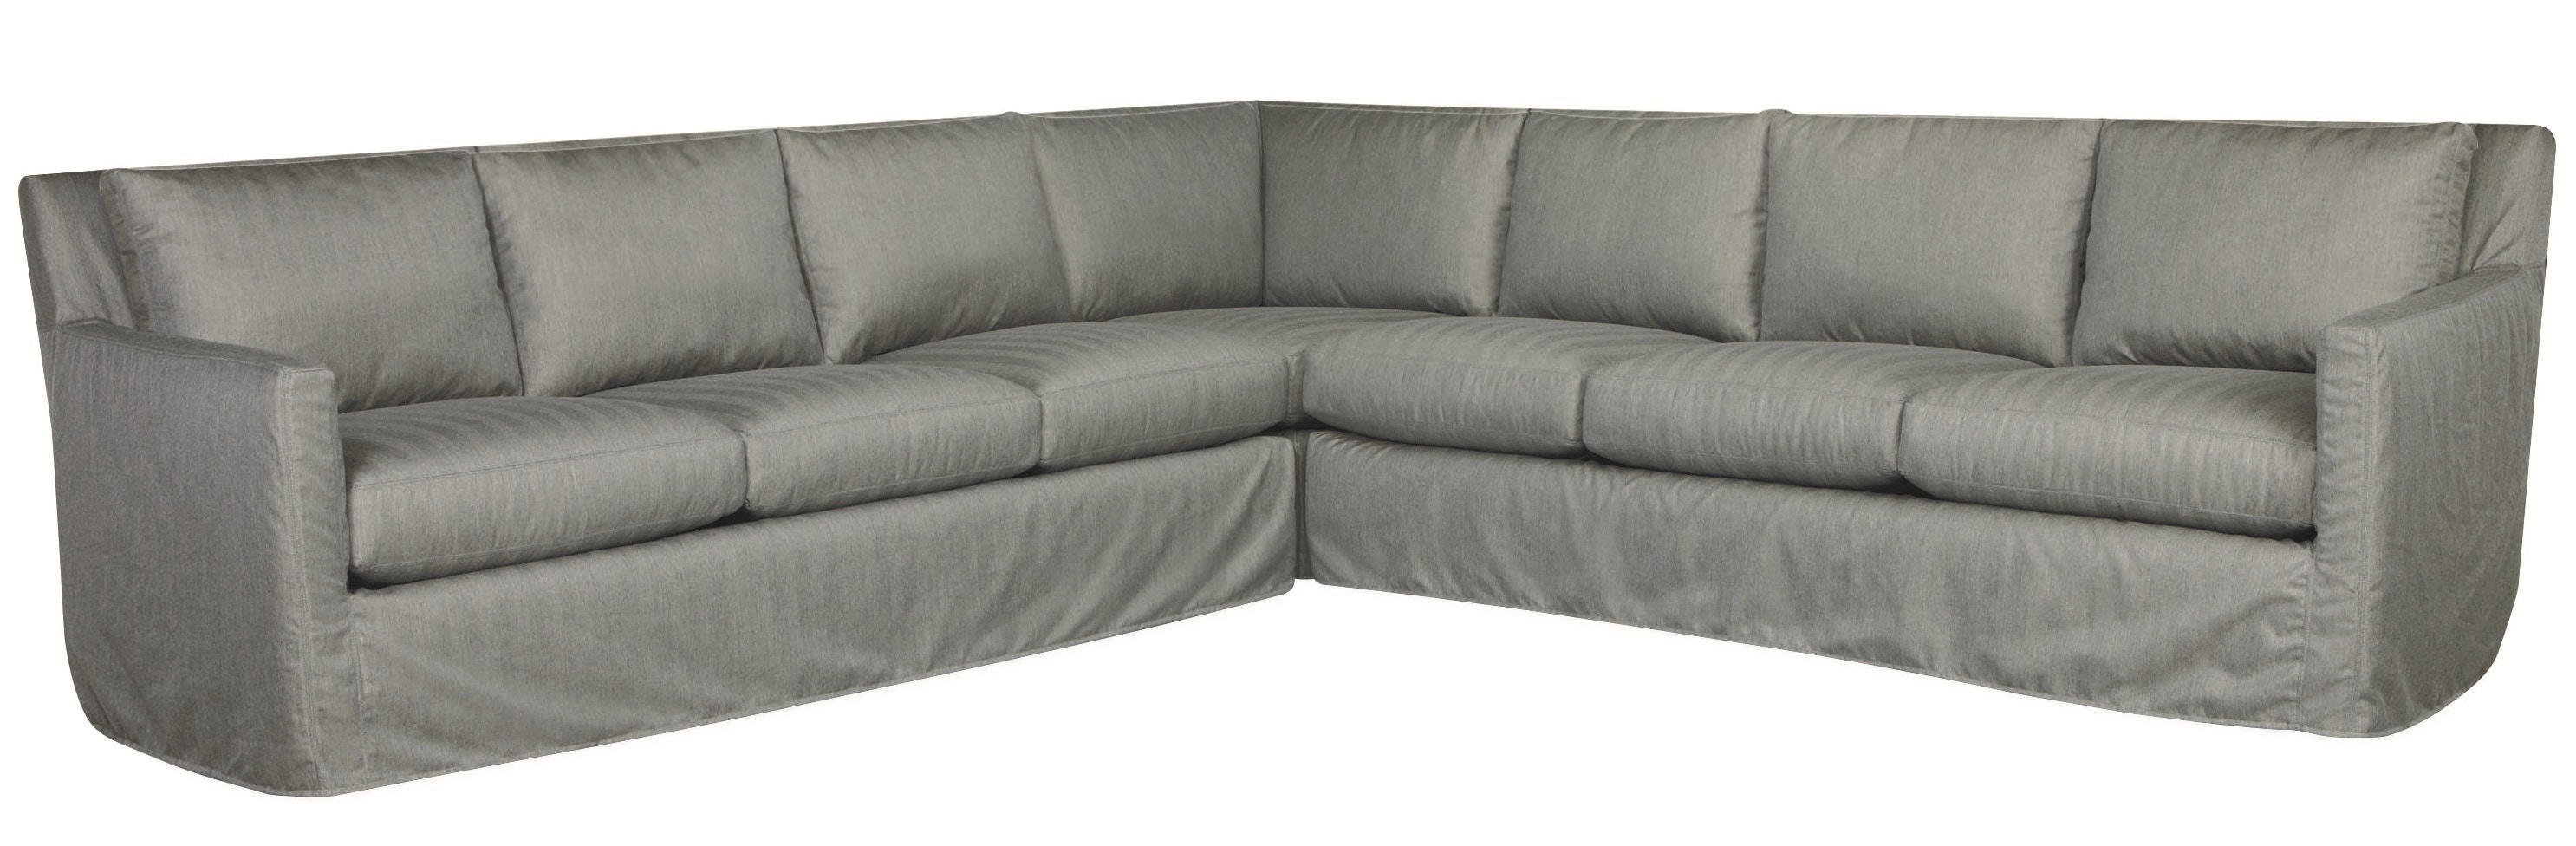 Lee Industries Nandina Outdoor Slipcovered Sectional Series US112 Series